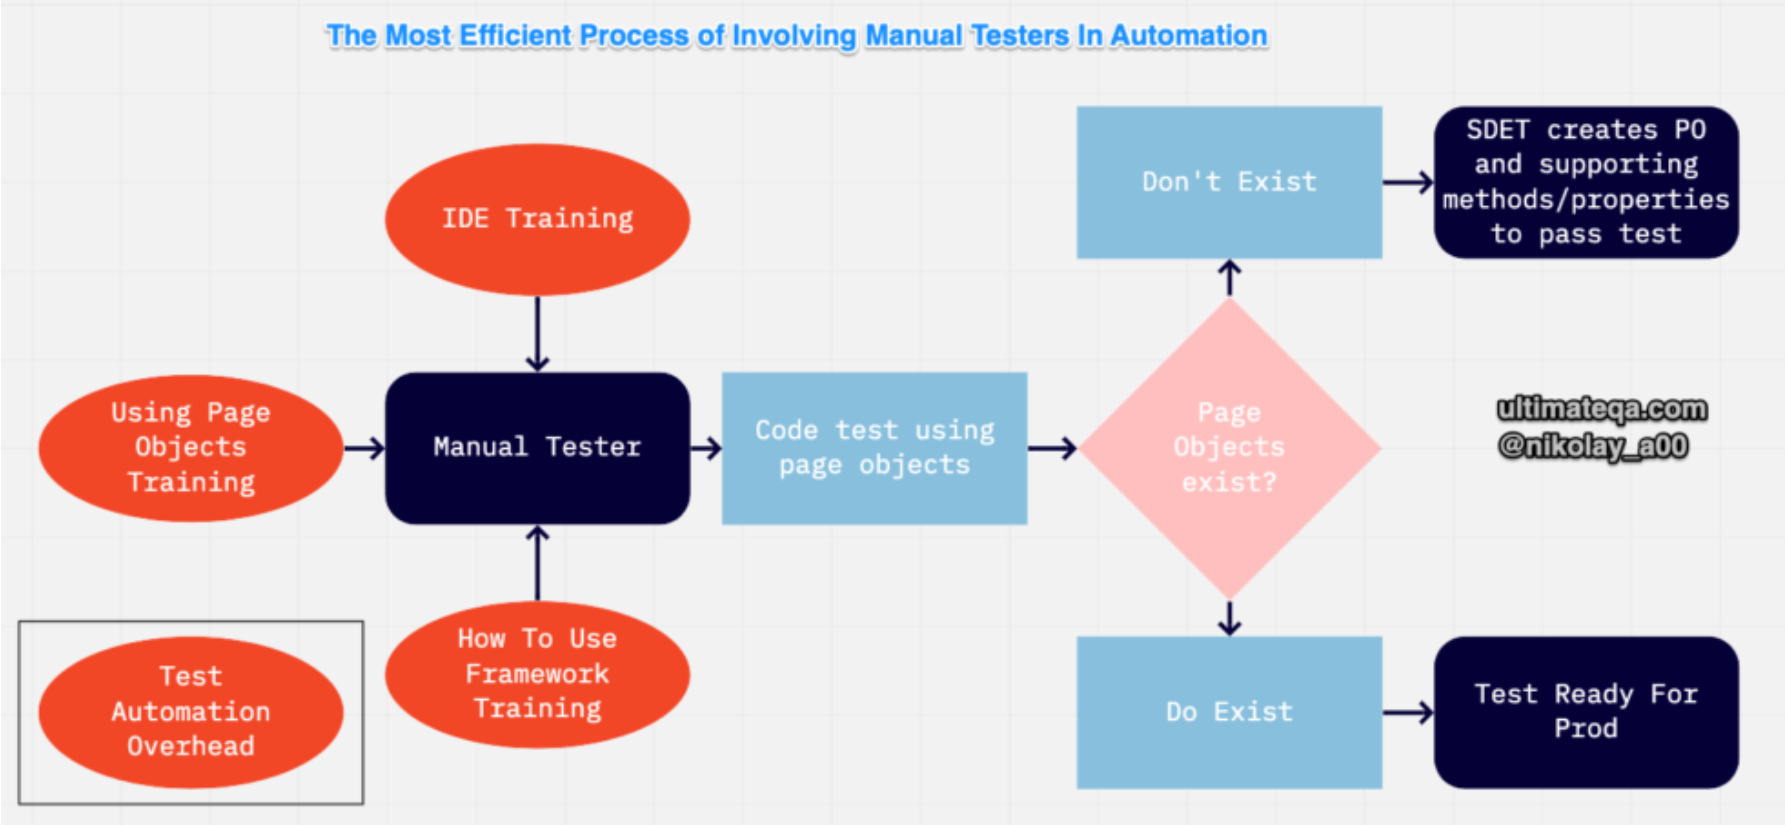 Involving Manual Testers in Automation Testing